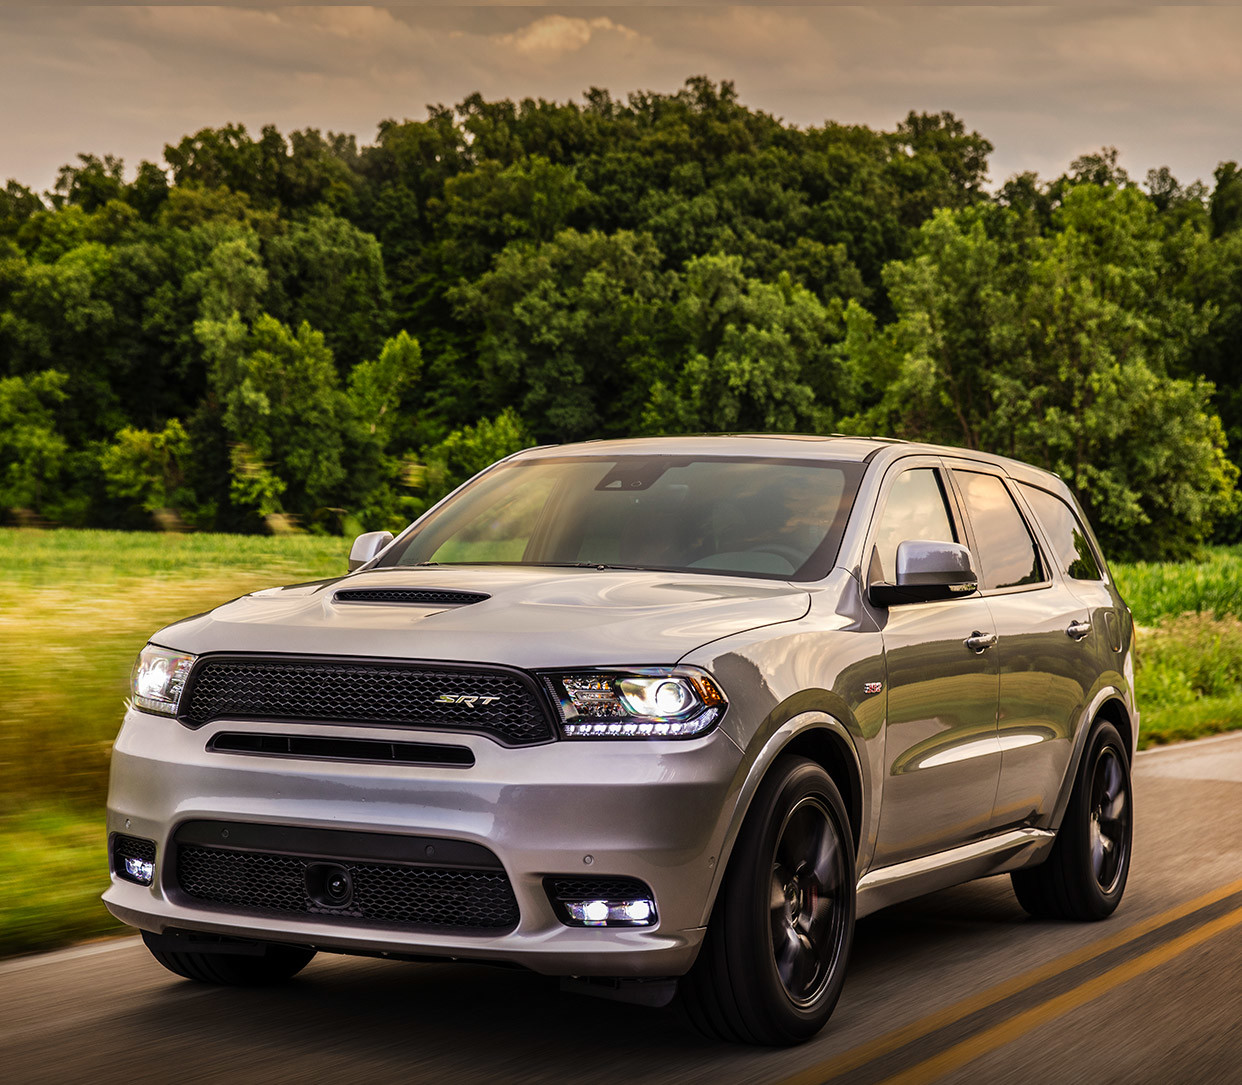 2020 Dodge Durango Rt Review.2020 Dodge Durango Dodge Canada